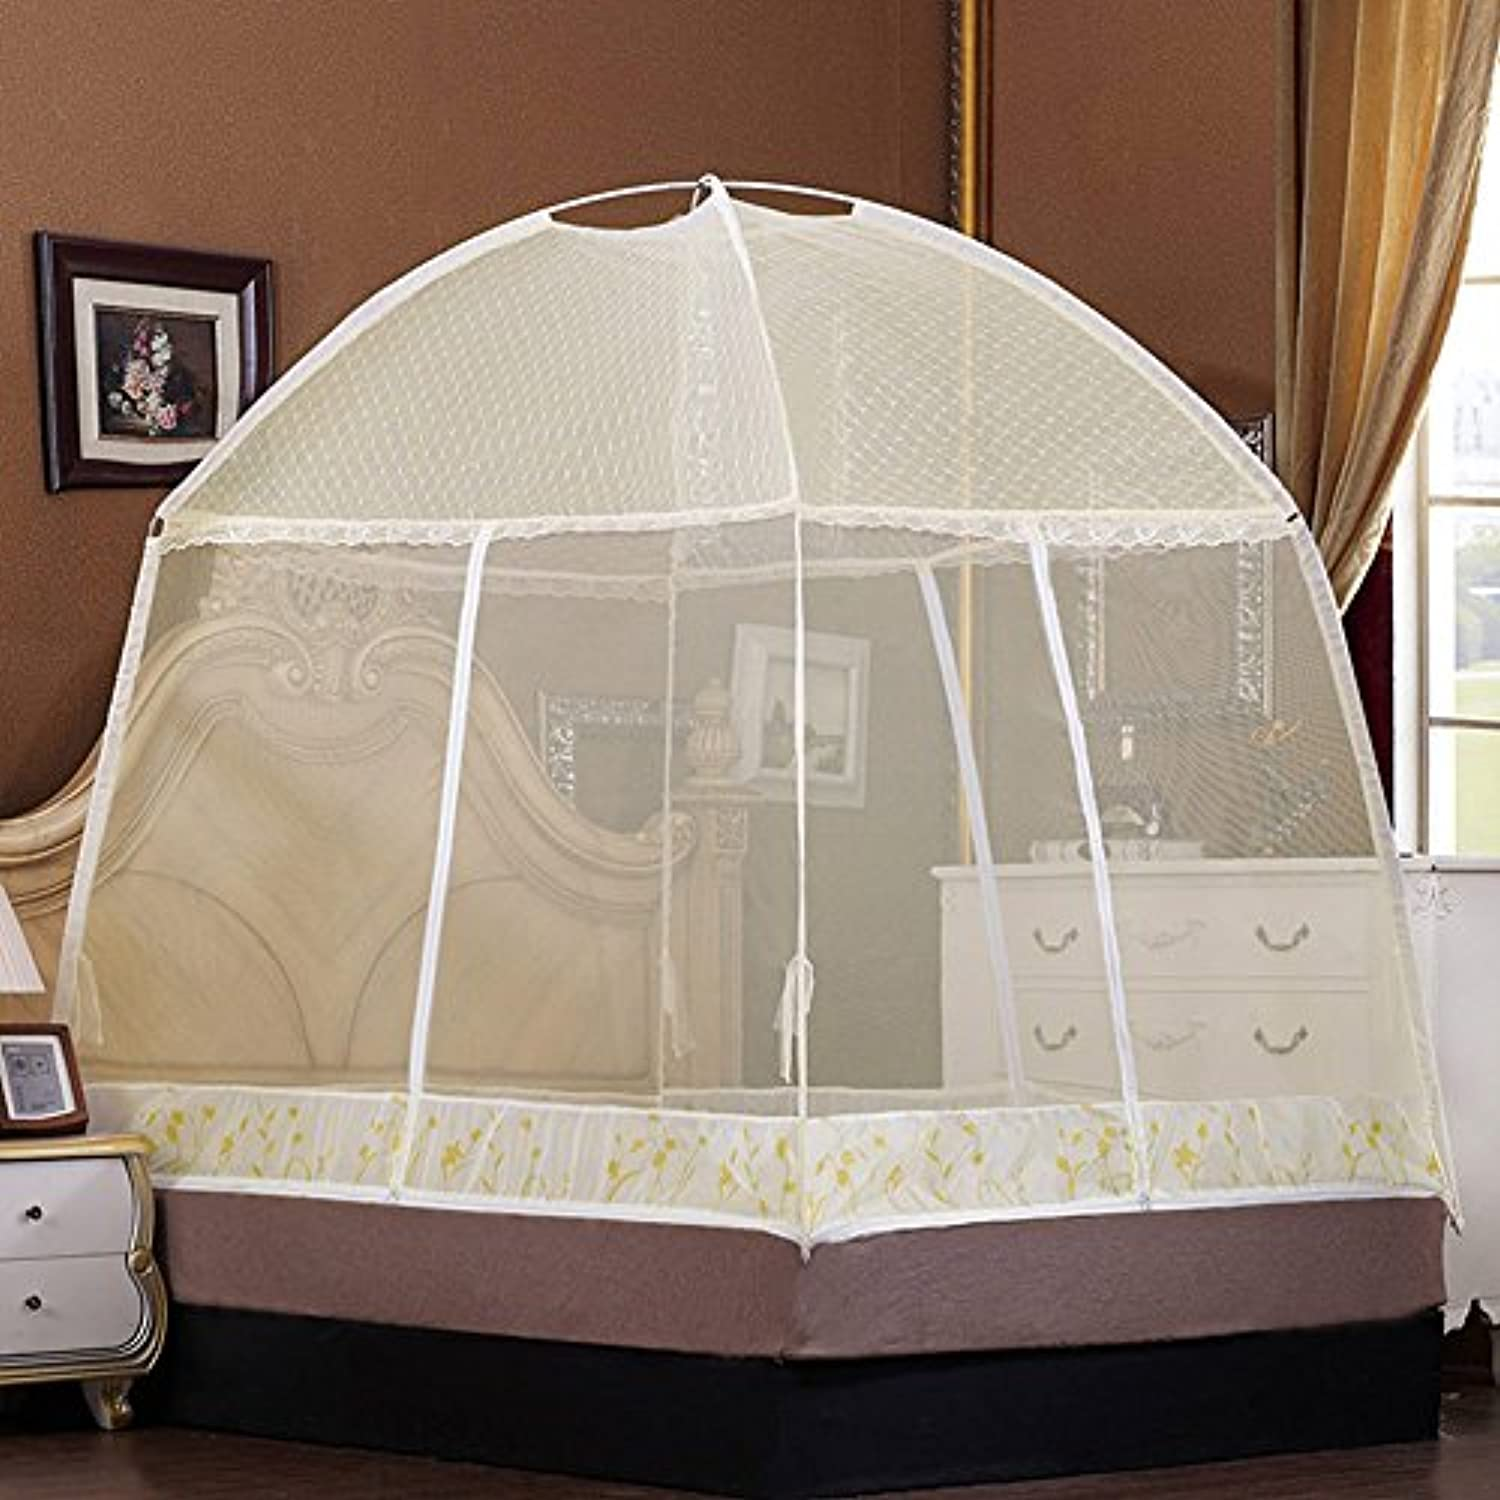 ruihome 3-doors free-standing Mosquito Netテント折りたたみ式ベッドキャノピー昆虫ネッティングforホーム旅行 70.9x78.7x63